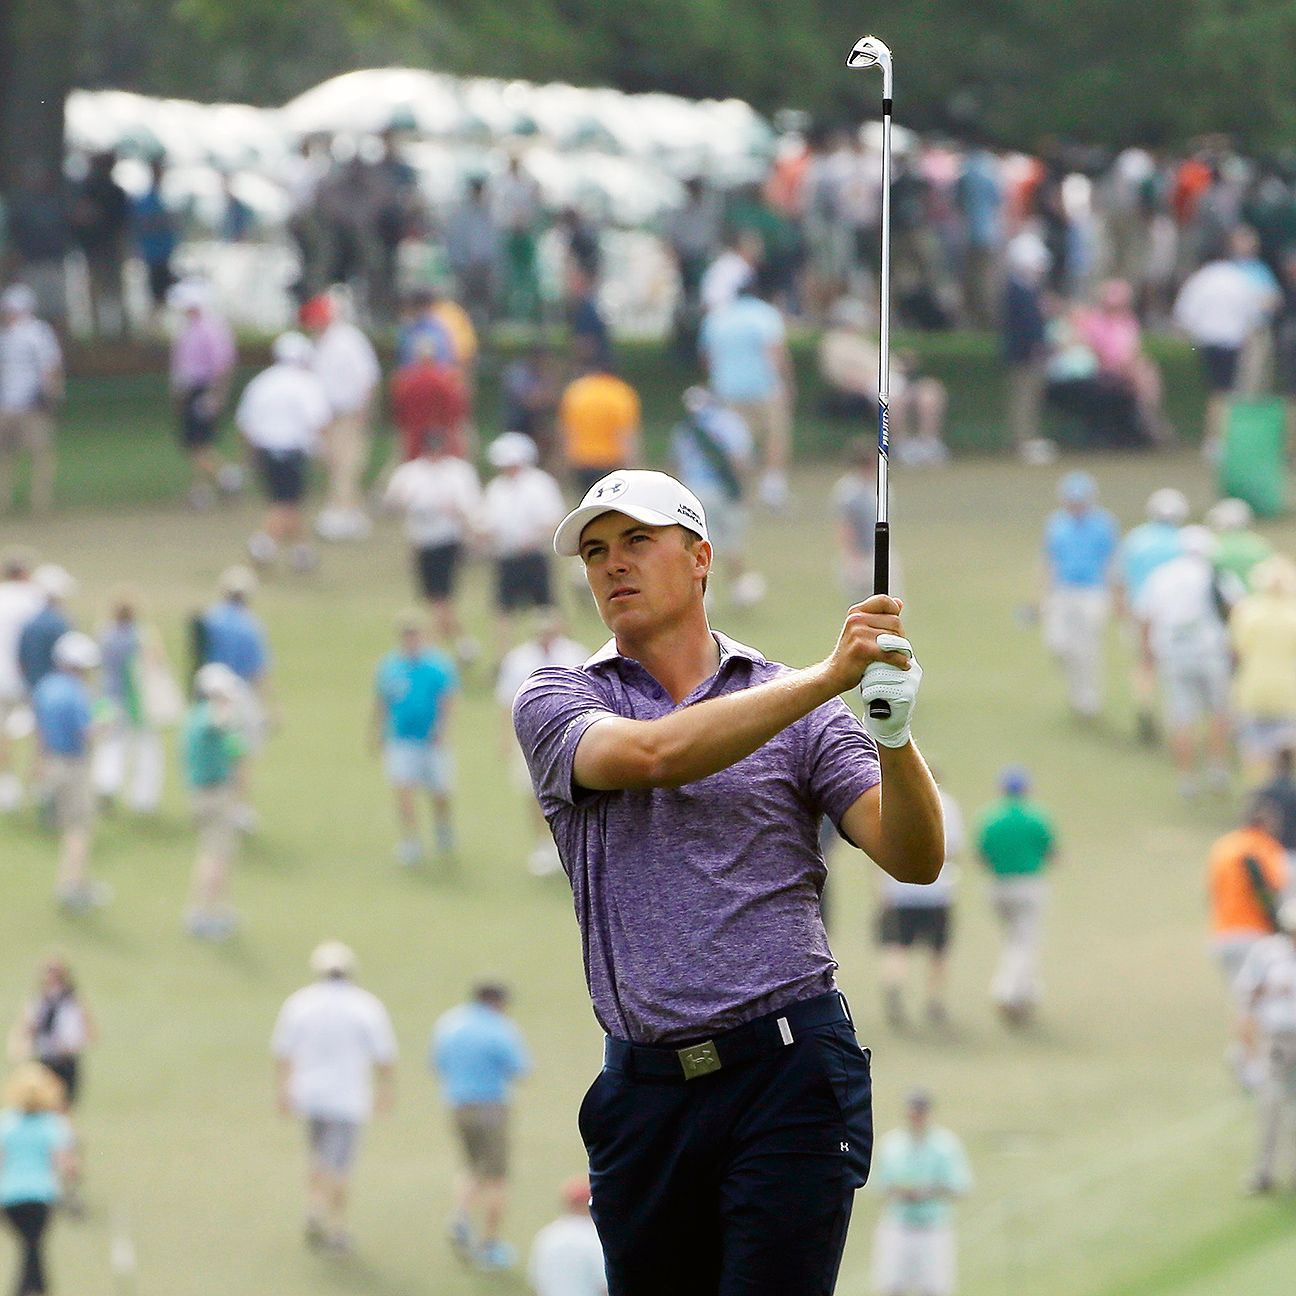 Jordan Spieth motivated, celebrated by his family